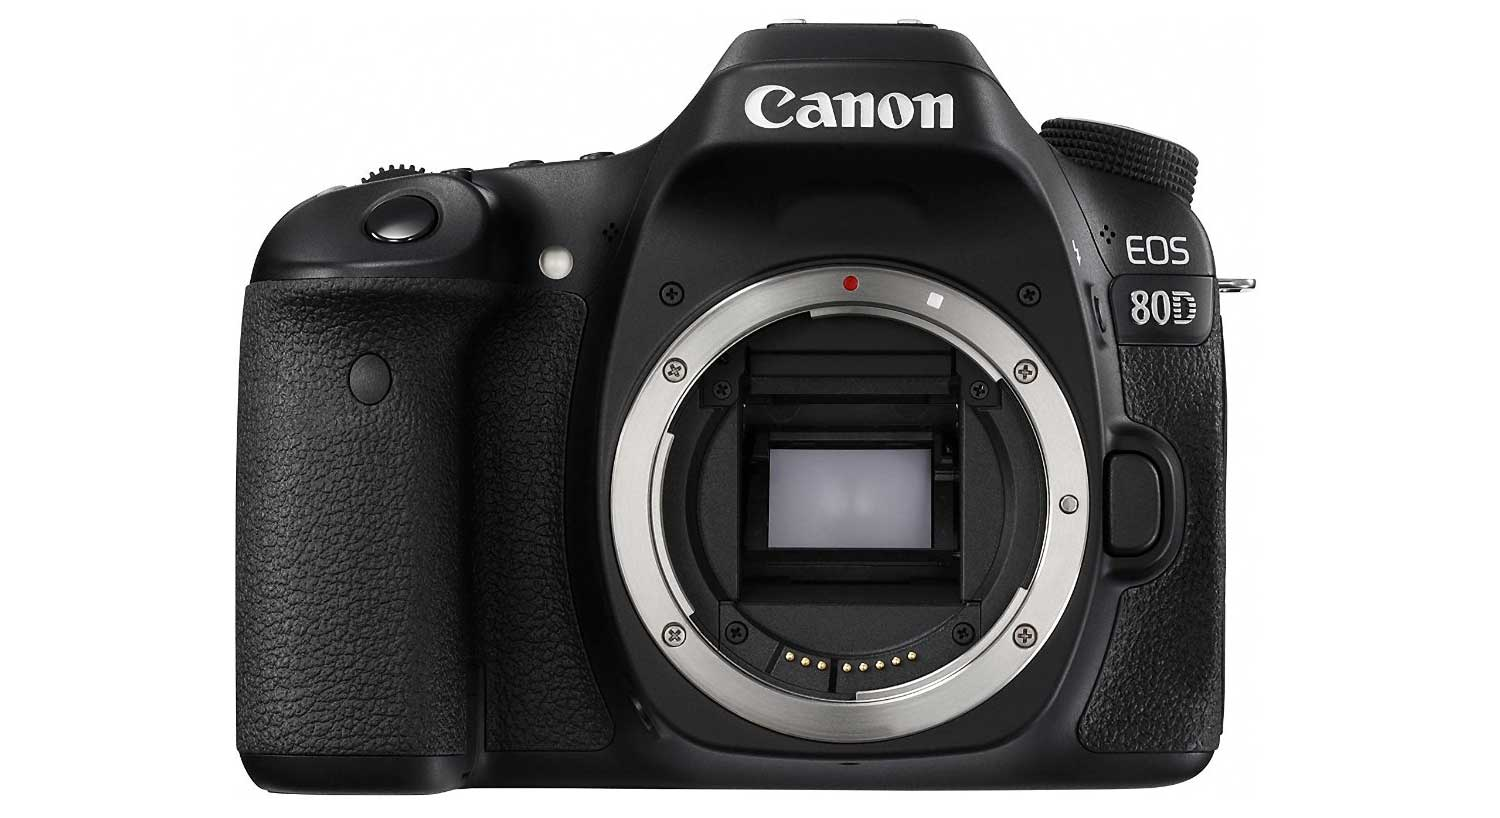 Canon EOS 80D Review: Great DSLR for Video | Tom's Guide